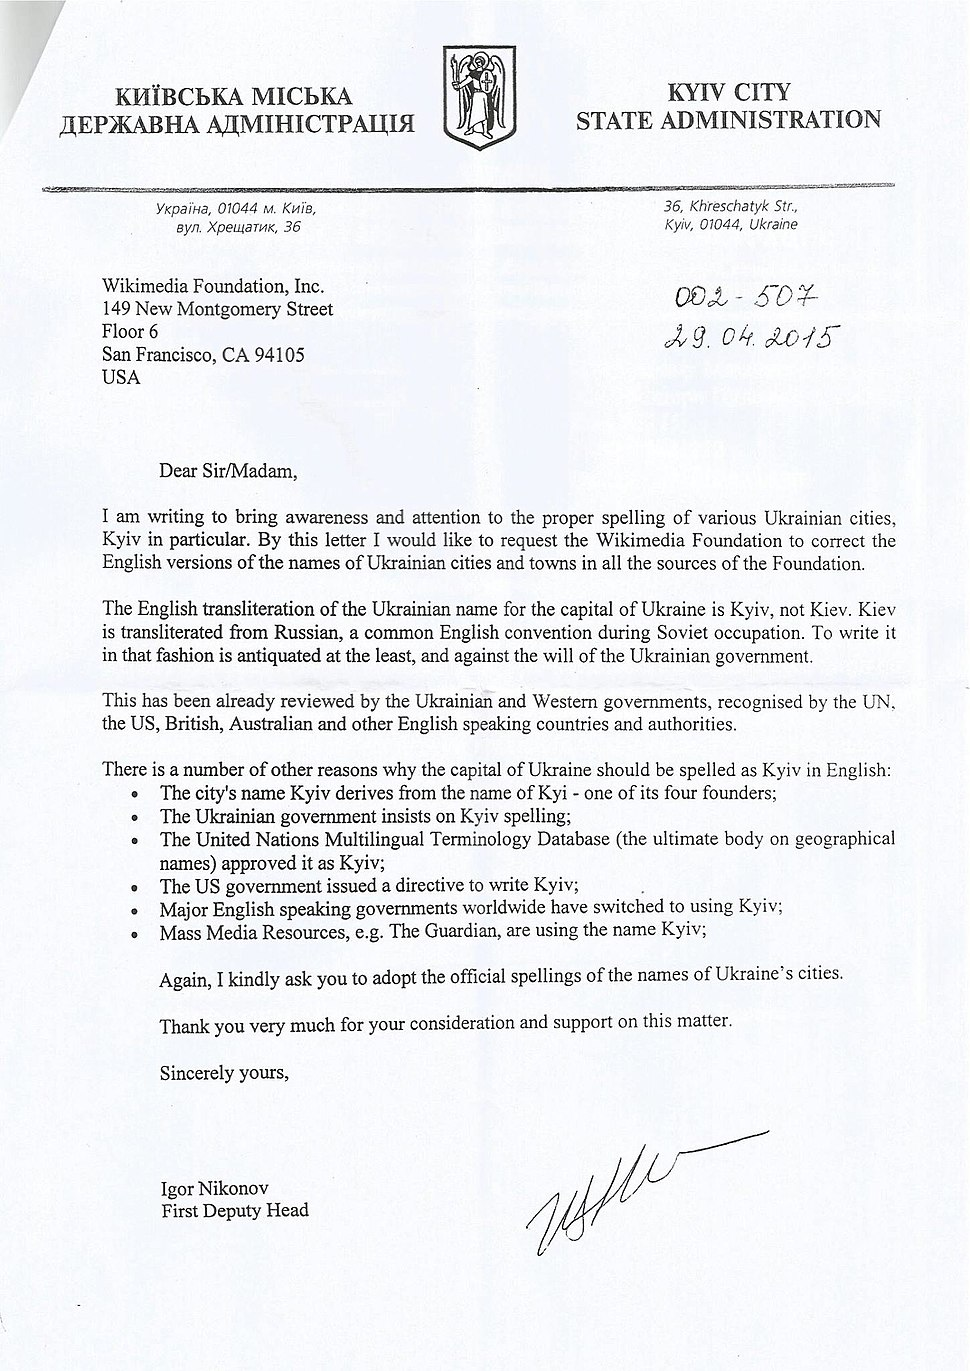 Kyiv City State Administration Letter to WMF